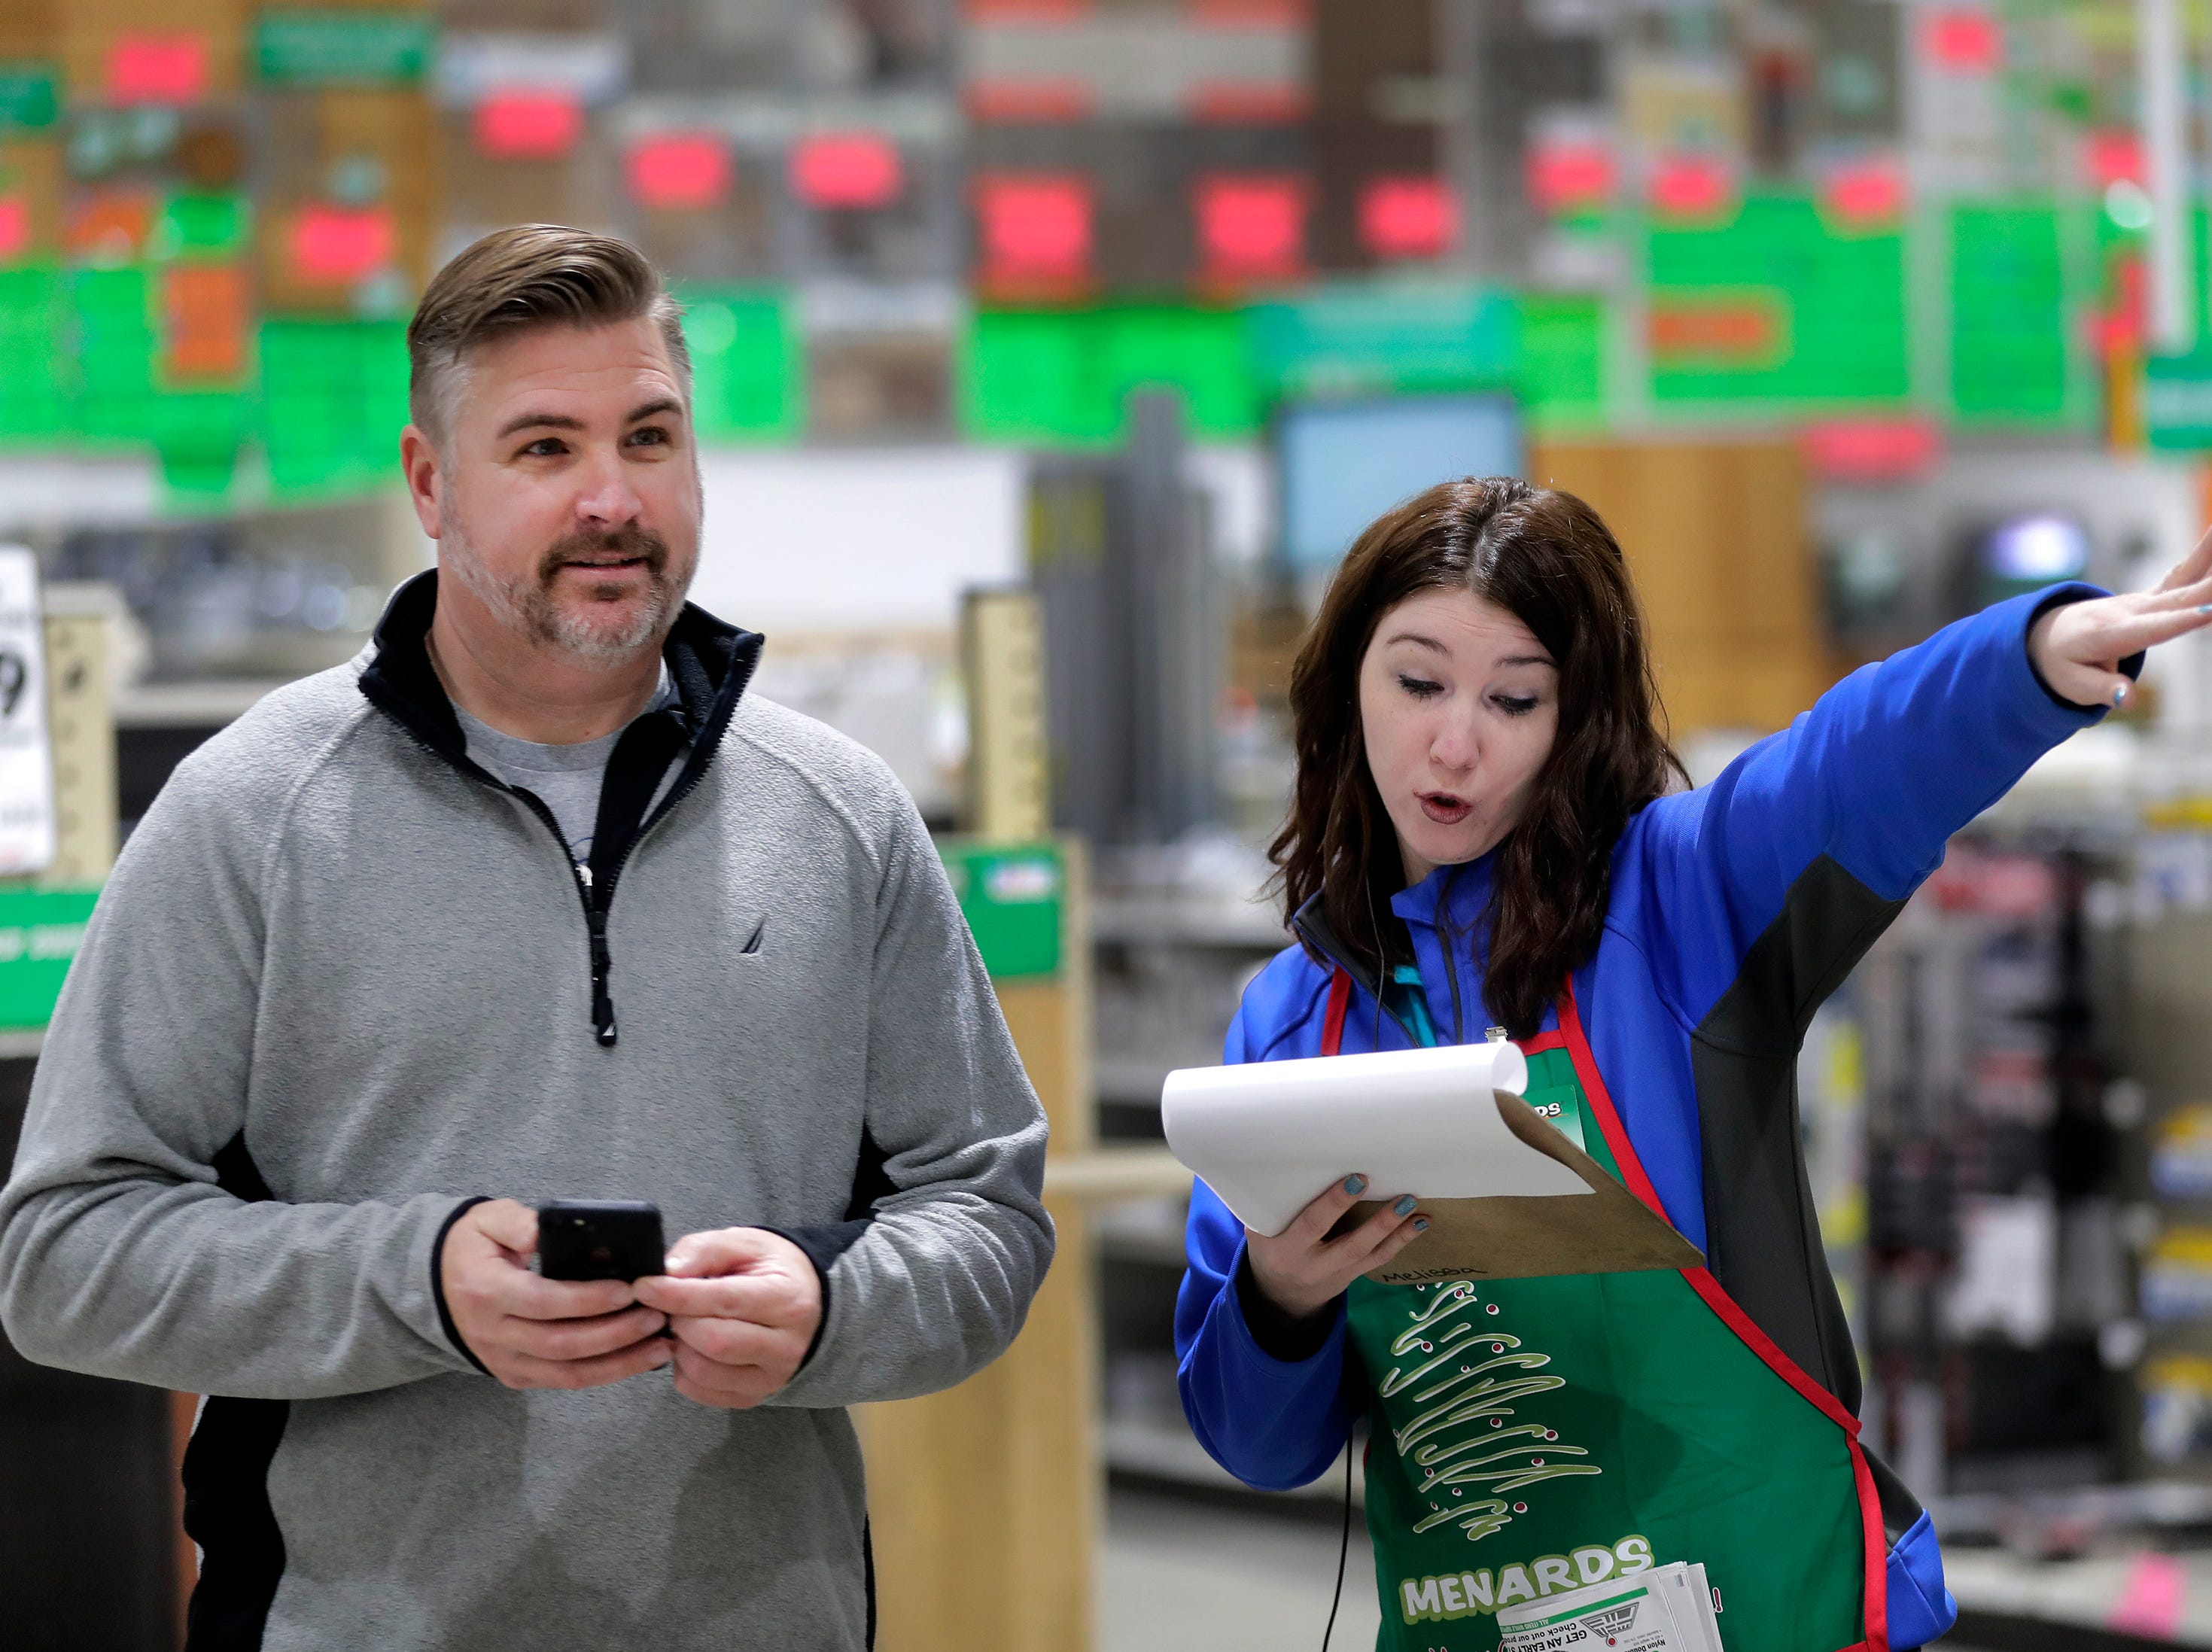 Melissa Scott helps Black Friday shopper Todd Wiunderlich at Menards on Friday, Nov. 23, 2018 in Grand Chute, Wis